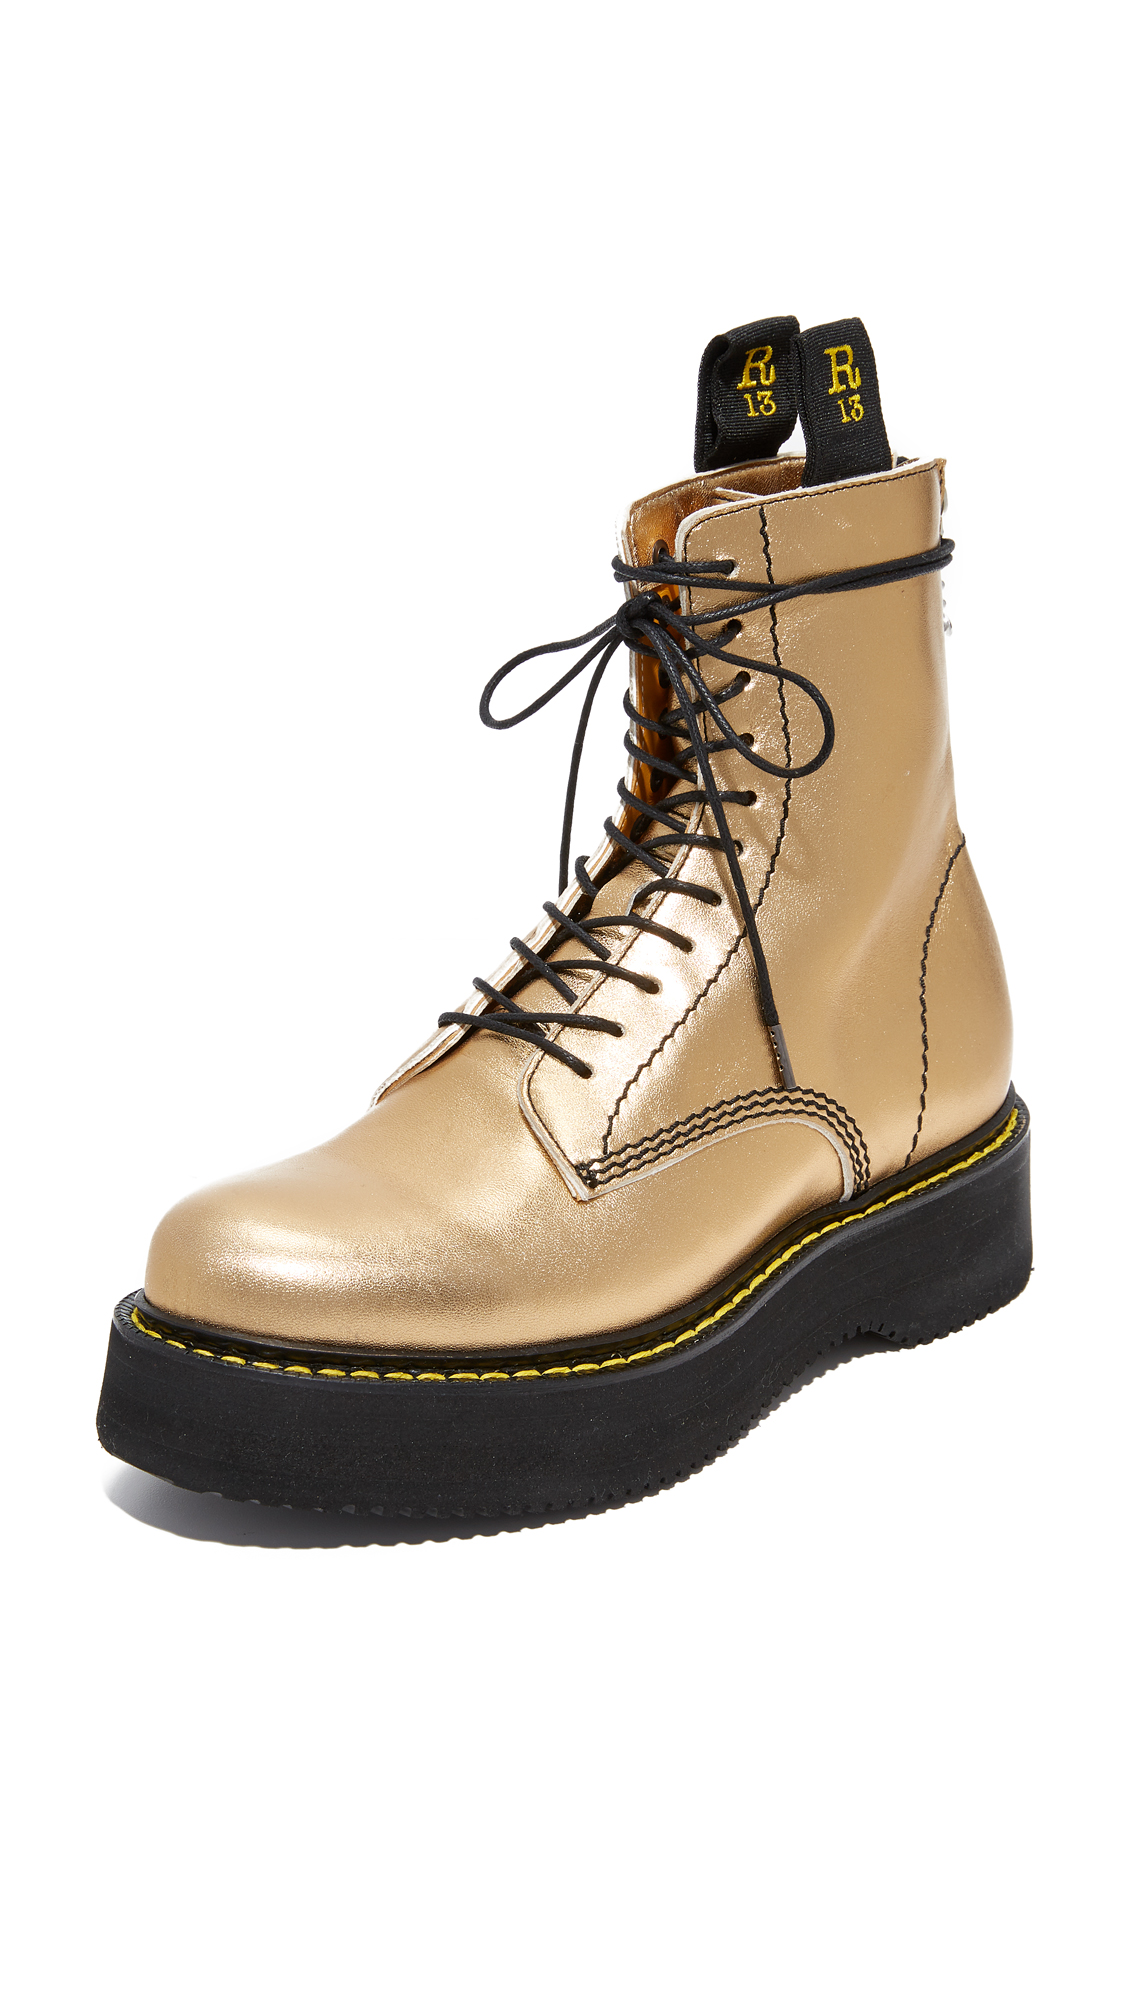 R13 Glamrock Single Stack Boots - Gold